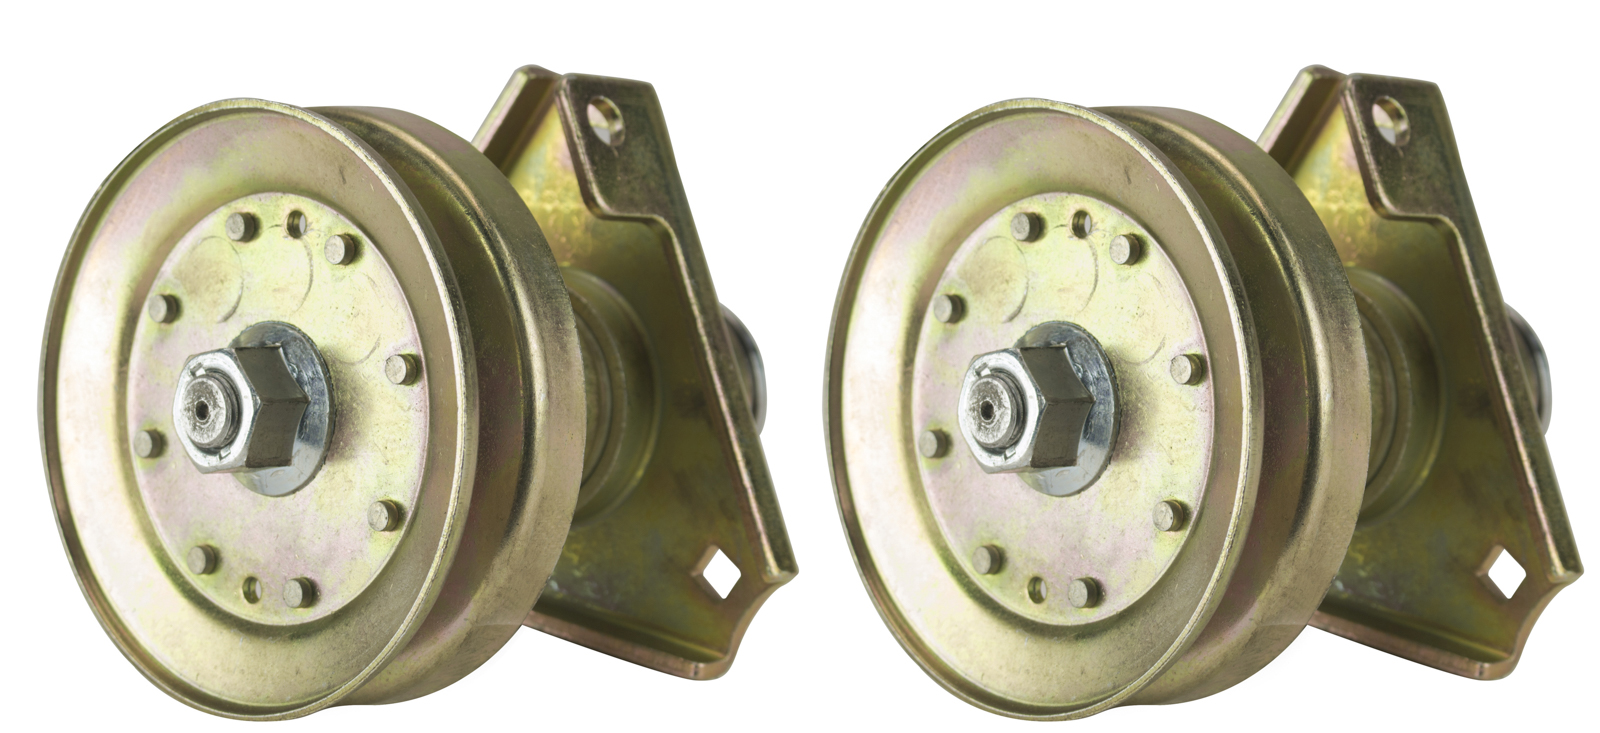 Two (2) Pack Erie Tools Lawn Mower Spindle Assembly Fits John Deere AM126226 LT 160, LT 166, LT 180, Sabre Lawn Tractor by Erie Tools